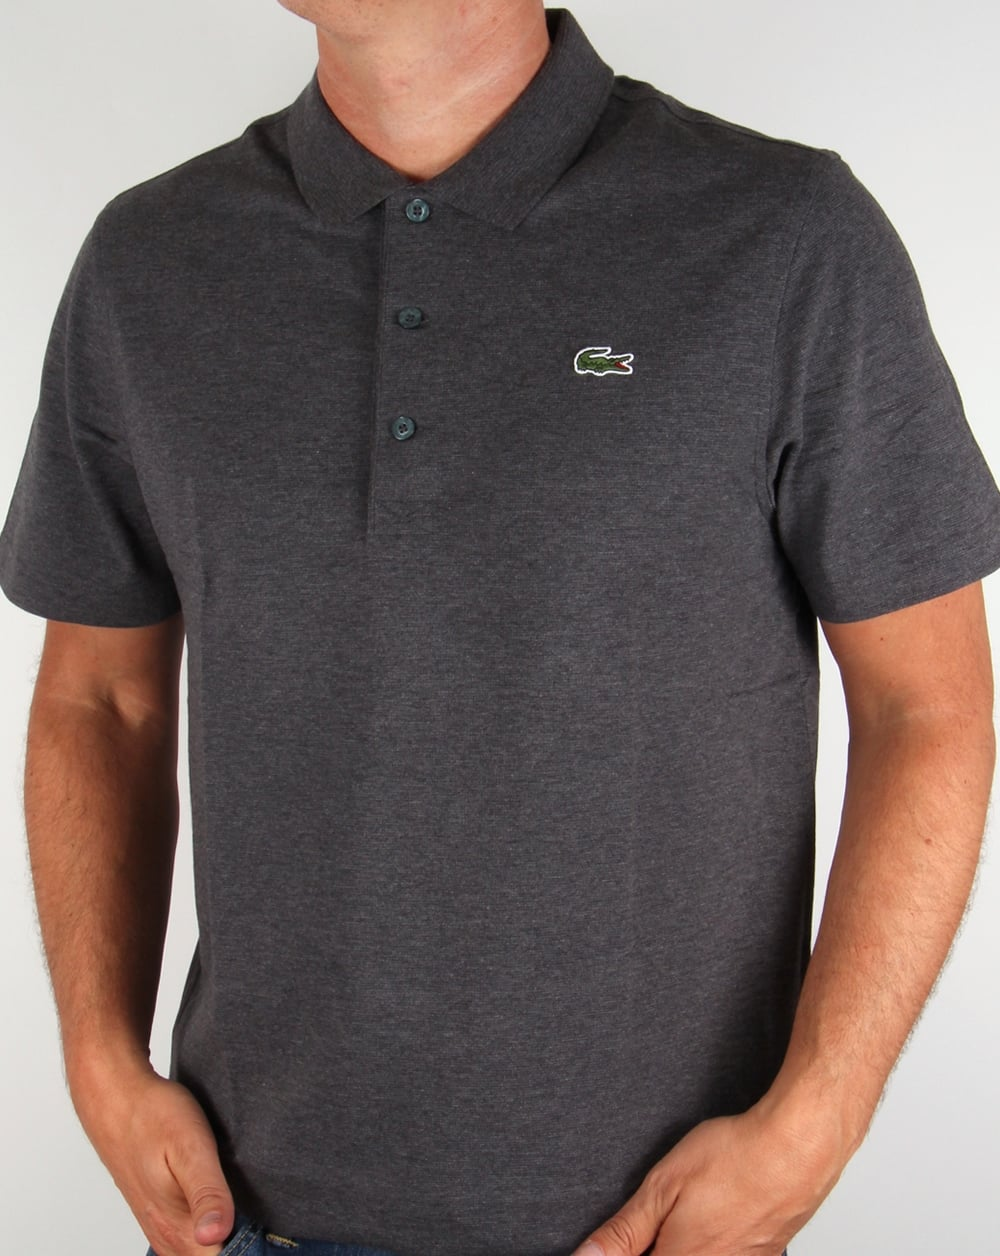 Maus & Hoffmans Provides high quality men's clothi Polos & T-shirts.